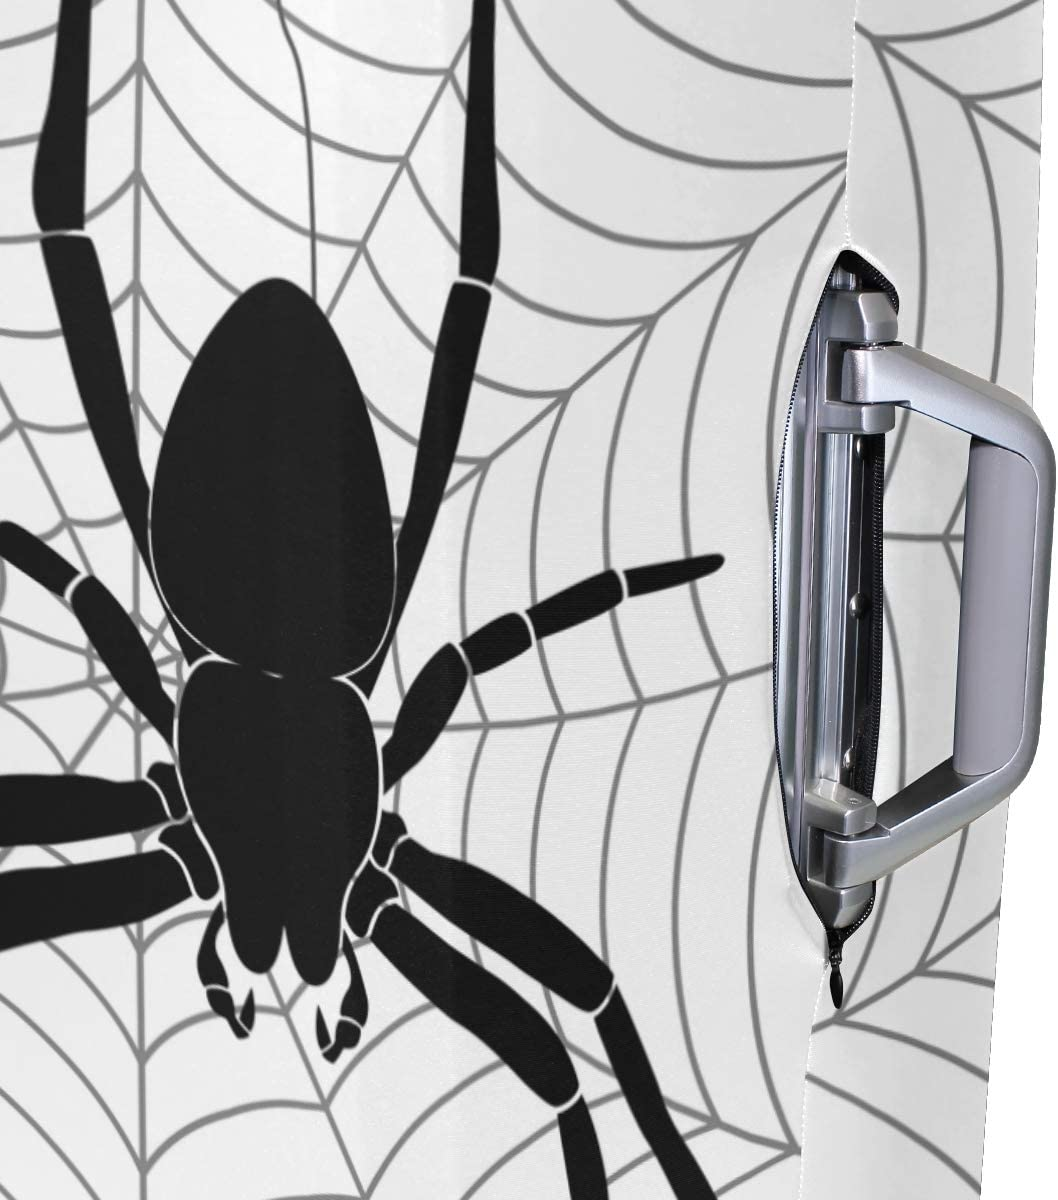 Nanmma Cute 3D Spider Pattern Luggage Protector Travel Luggage Cover Trolley Case Protective Cover Fits 18-32 Inch